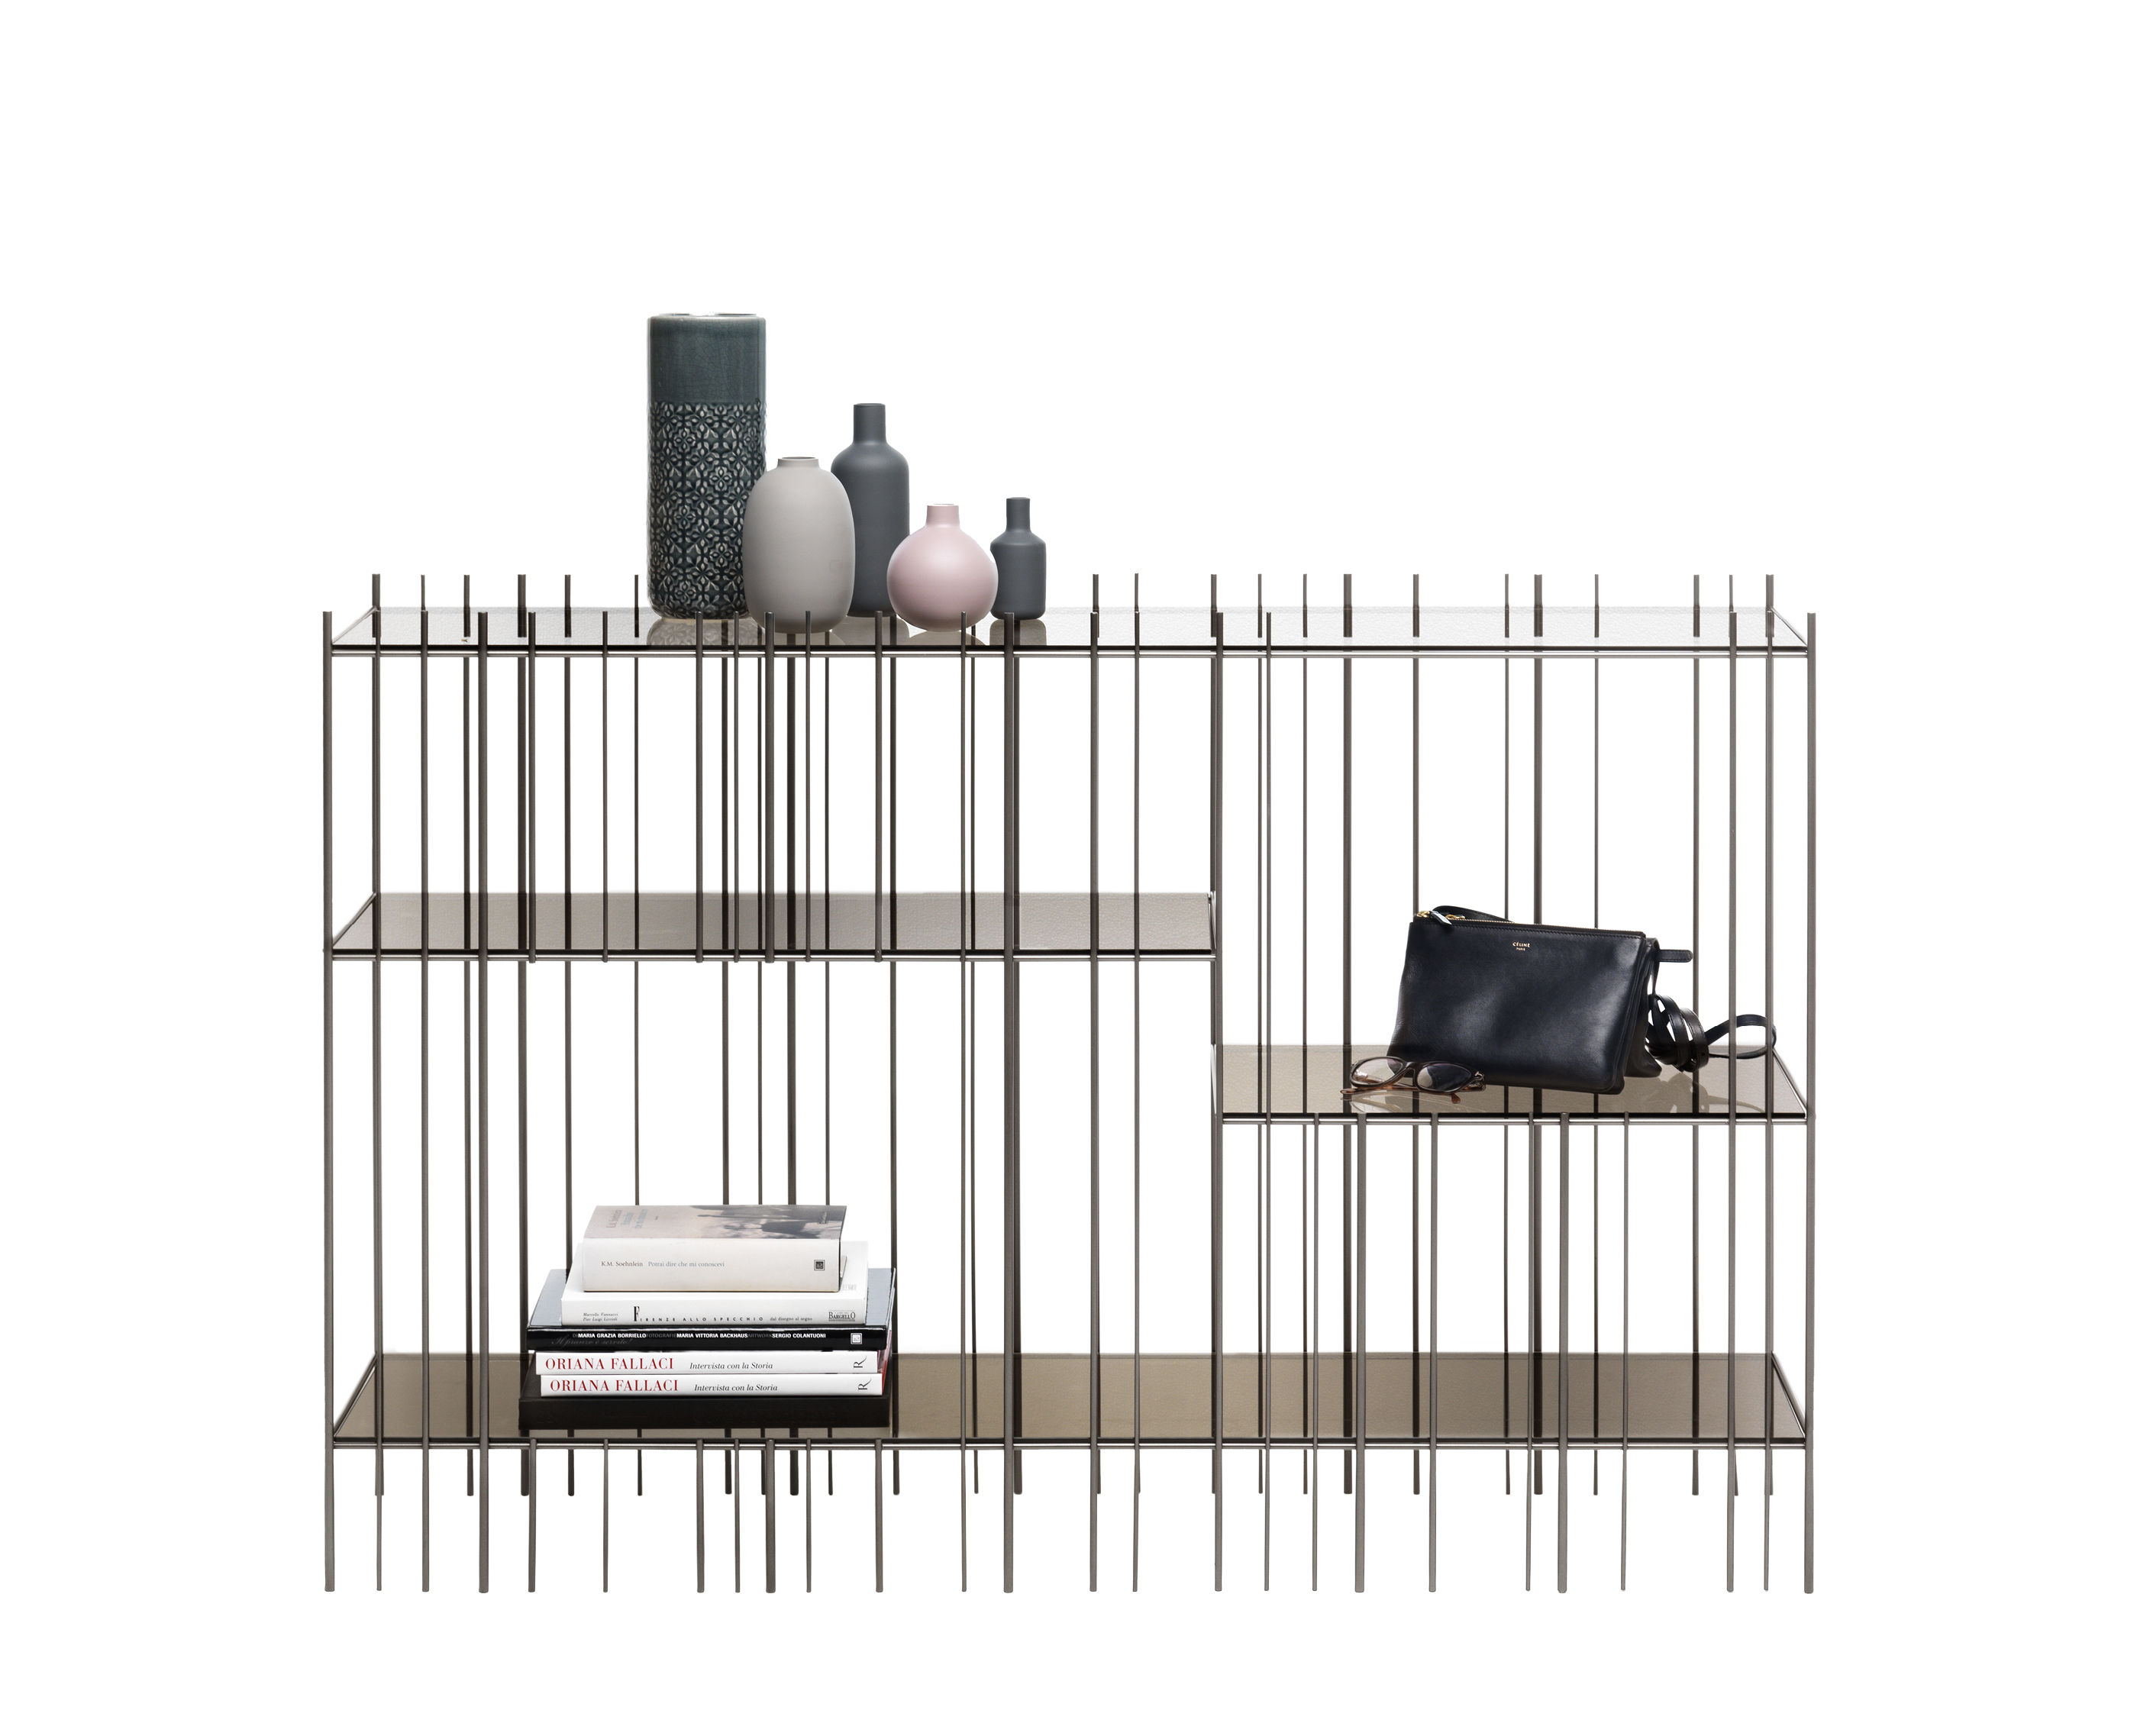 Furniture - Bookcases & Bookshelves - Metrica Console - / 125 x 84 cm - Steel & glass by Mogg - Brushed - Glass, Steel